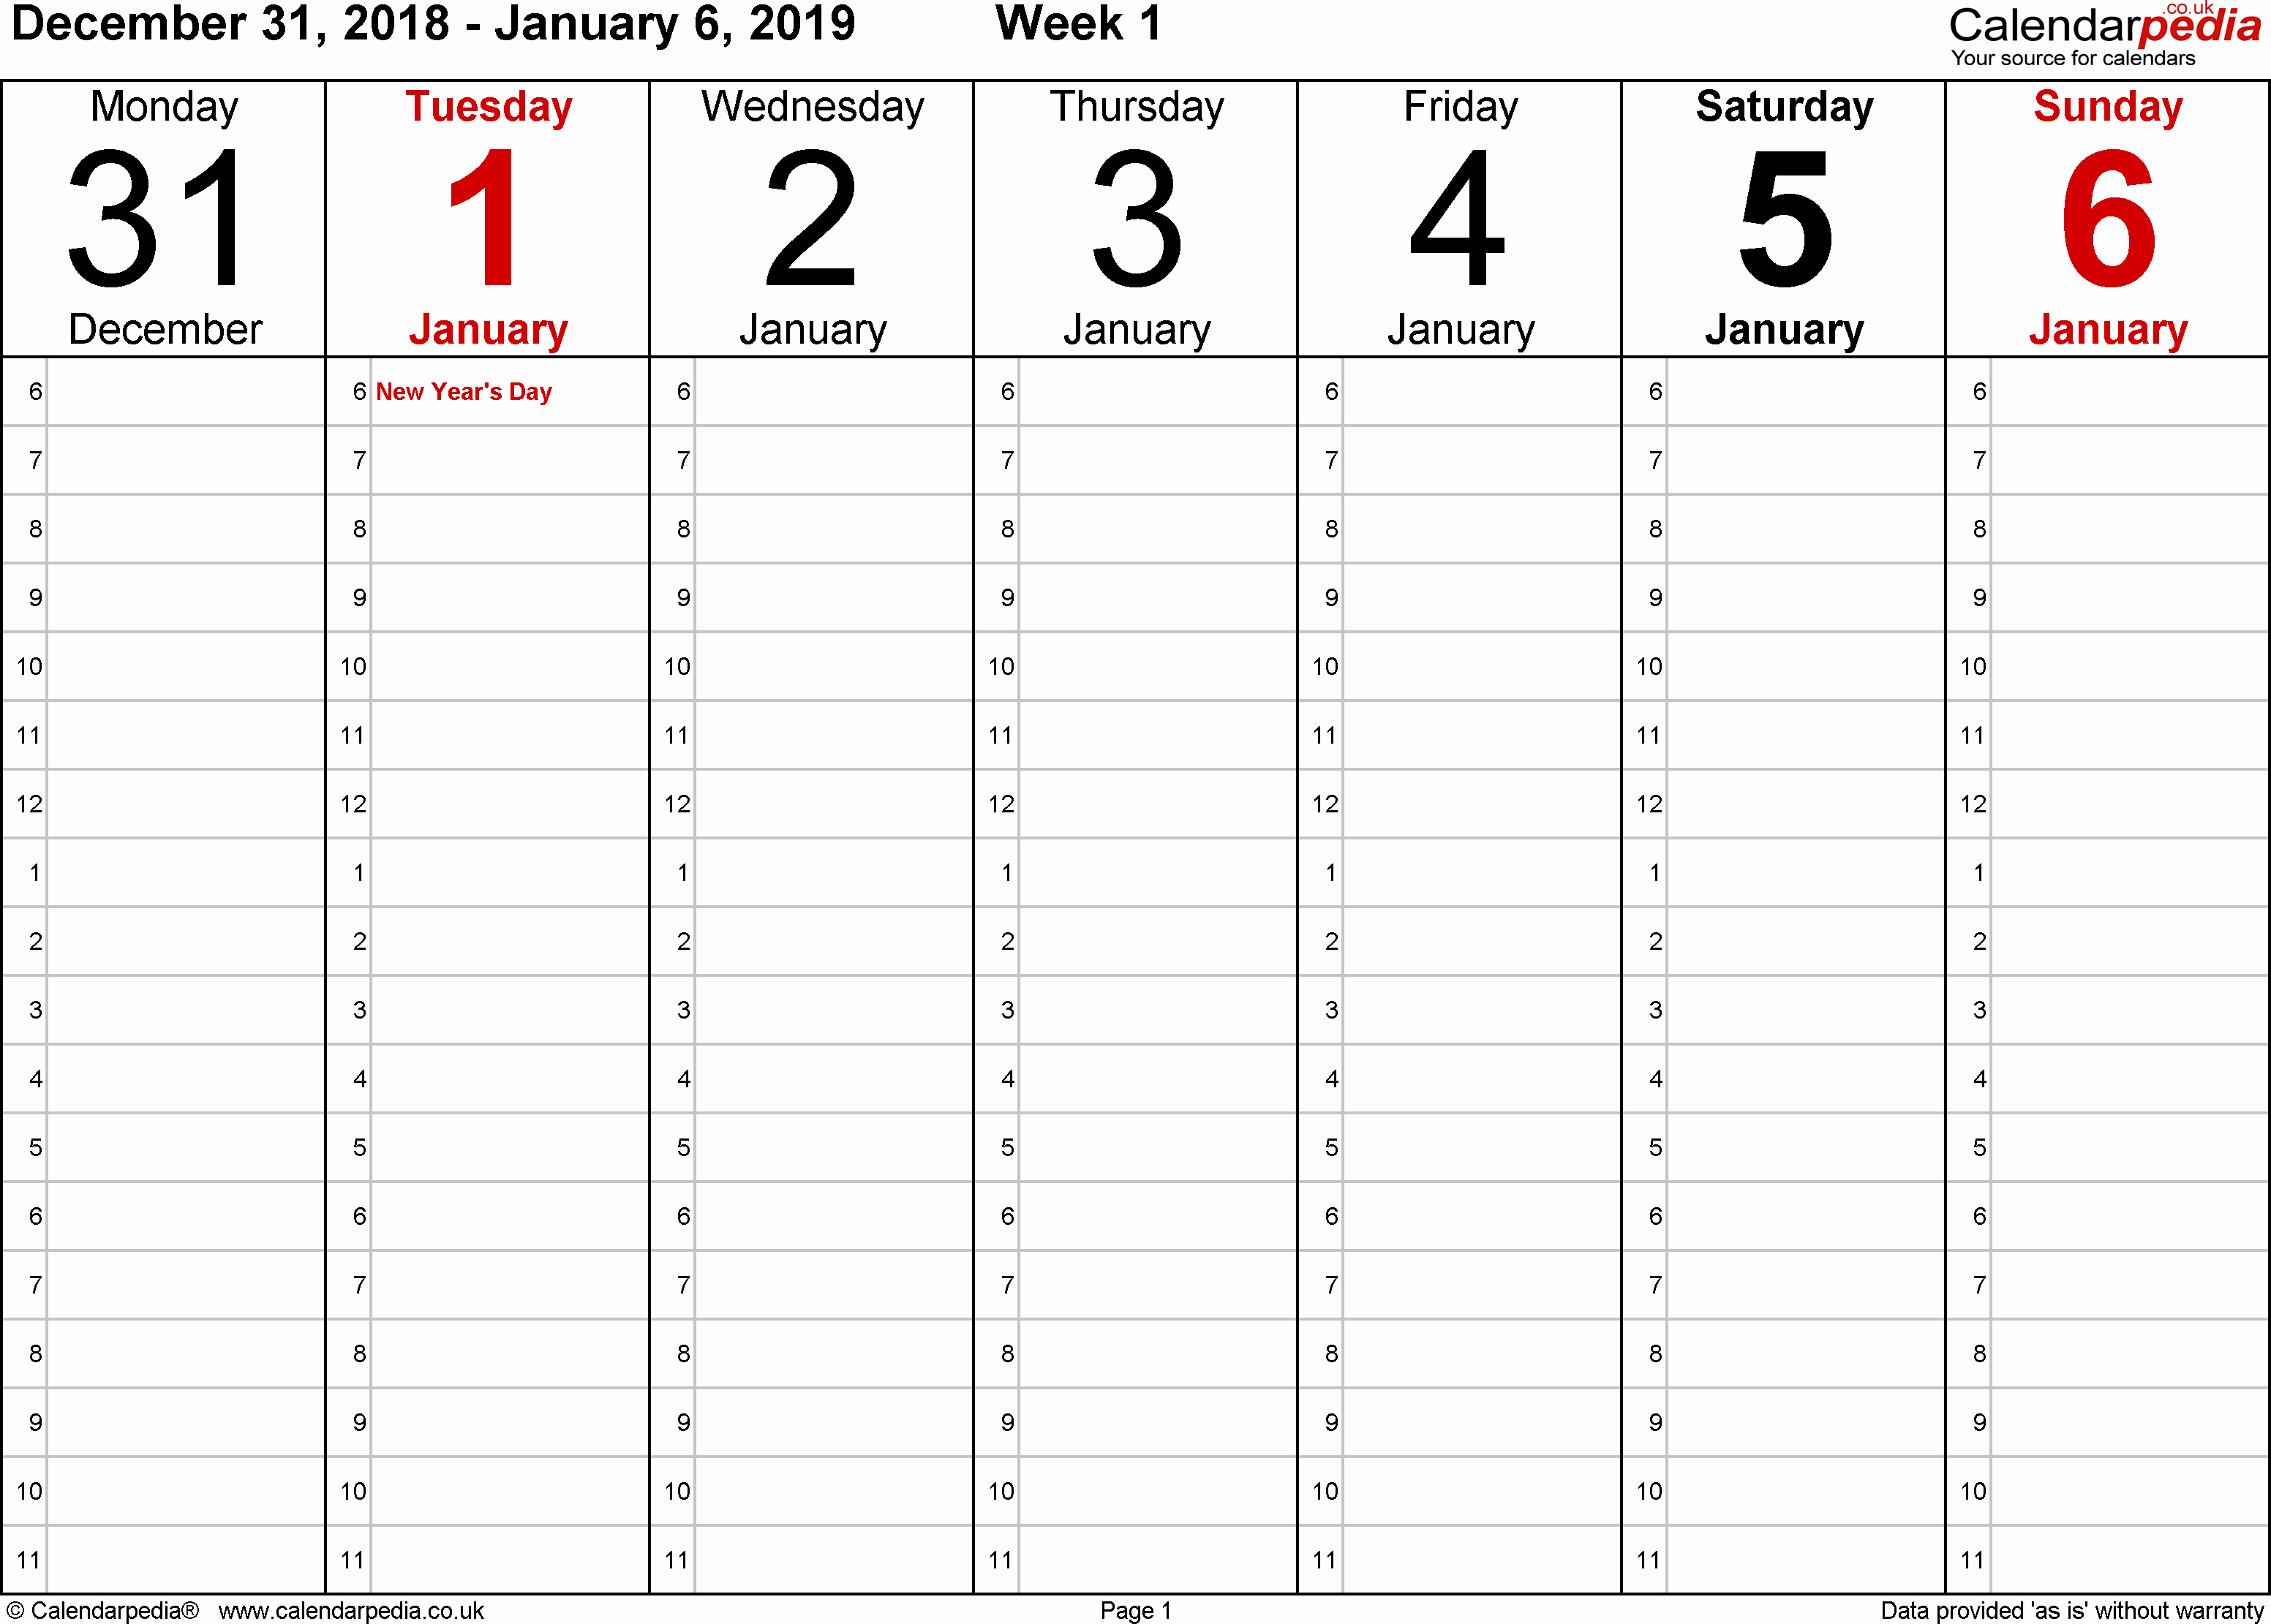 Week by Week Calendar Template Awesome Weekly Calendar 2019 Uk Free Printable Templates for Pdf